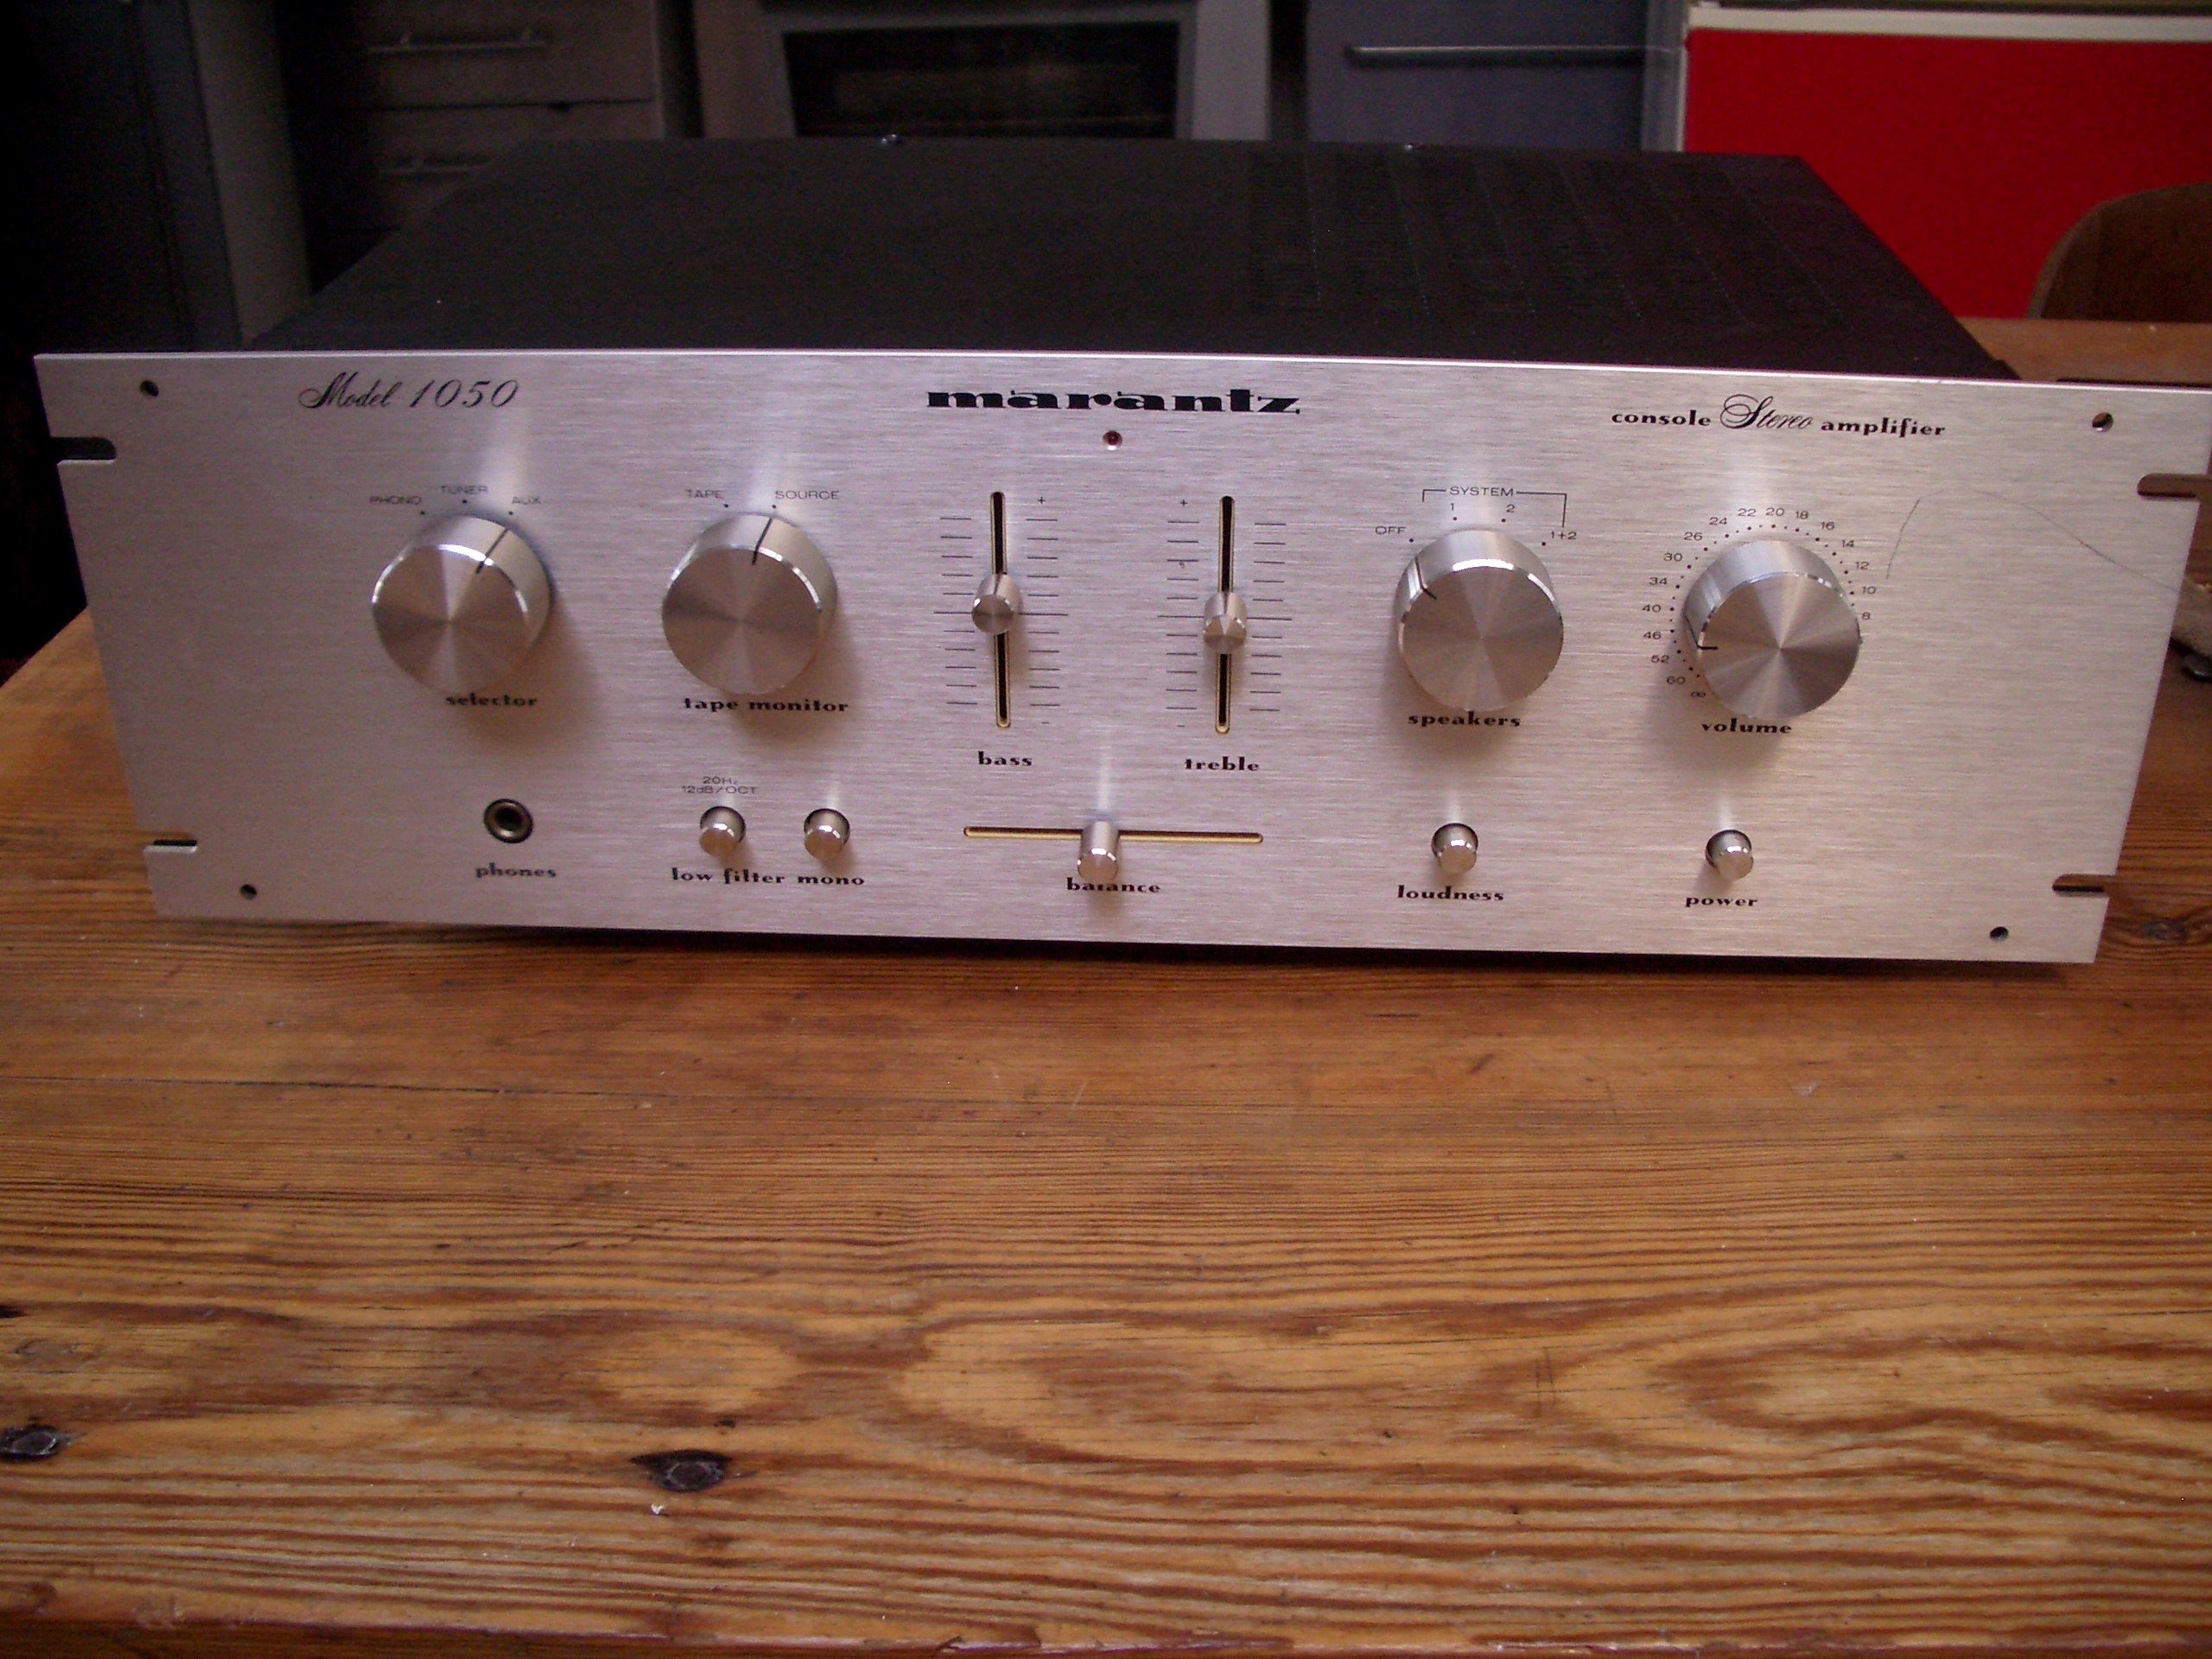 ampli marantz 1050 usa model rack rare amplifier design hifi vintage ebay. Black Bedroom Furniture Sets. Home Design Ideas